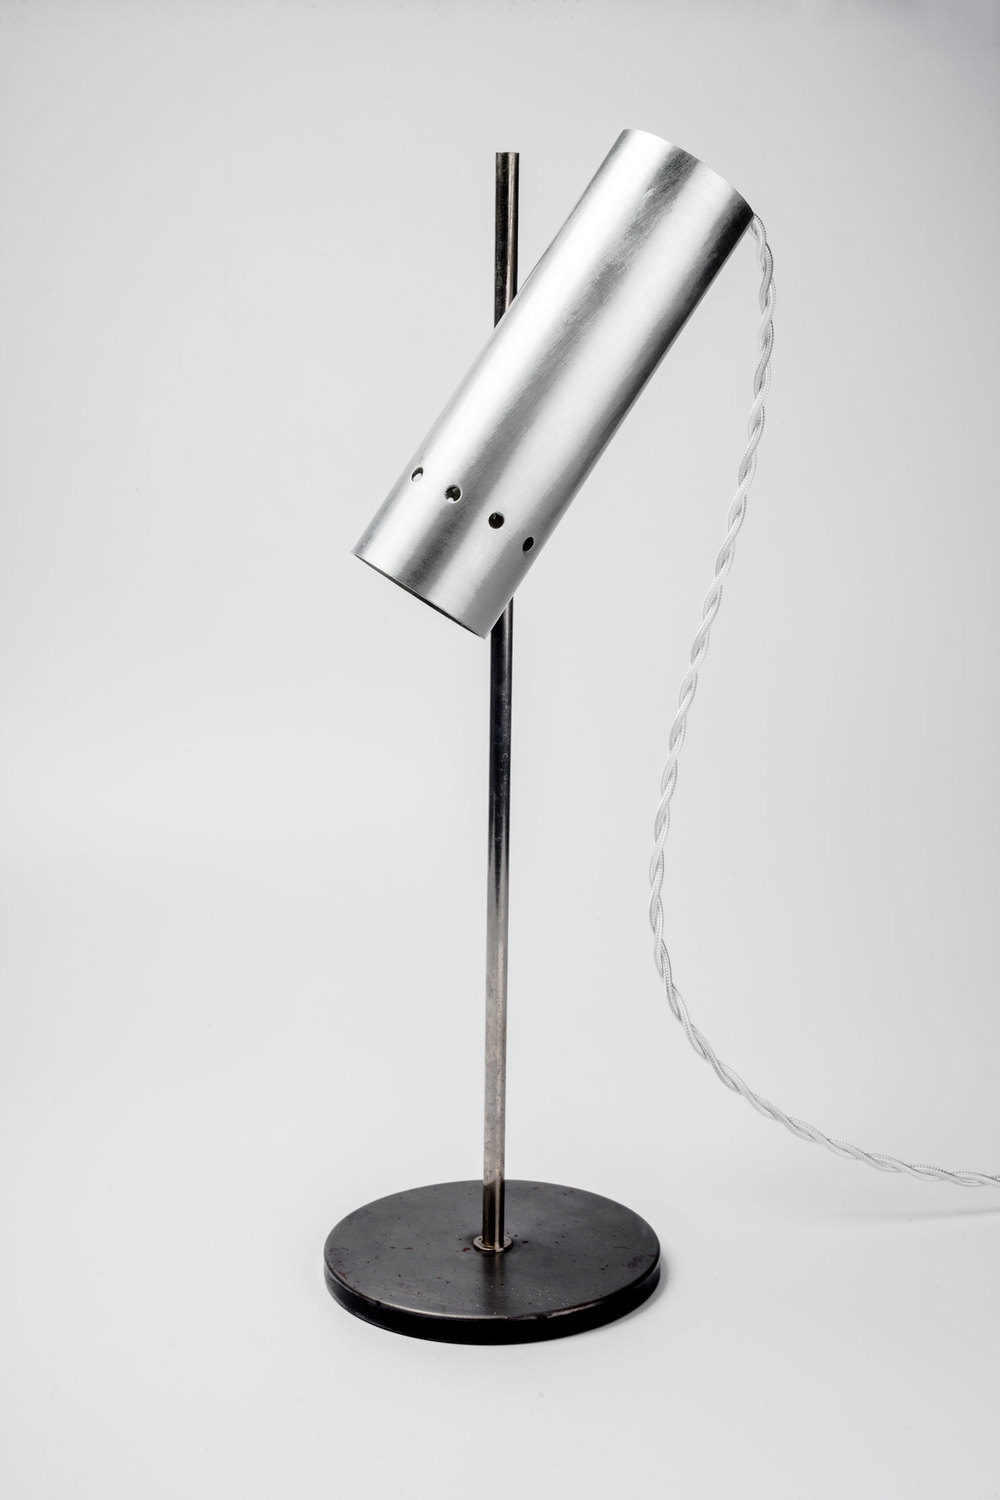 Modernist French Table Lamp With Brushed Aluminum Shade France 1950s